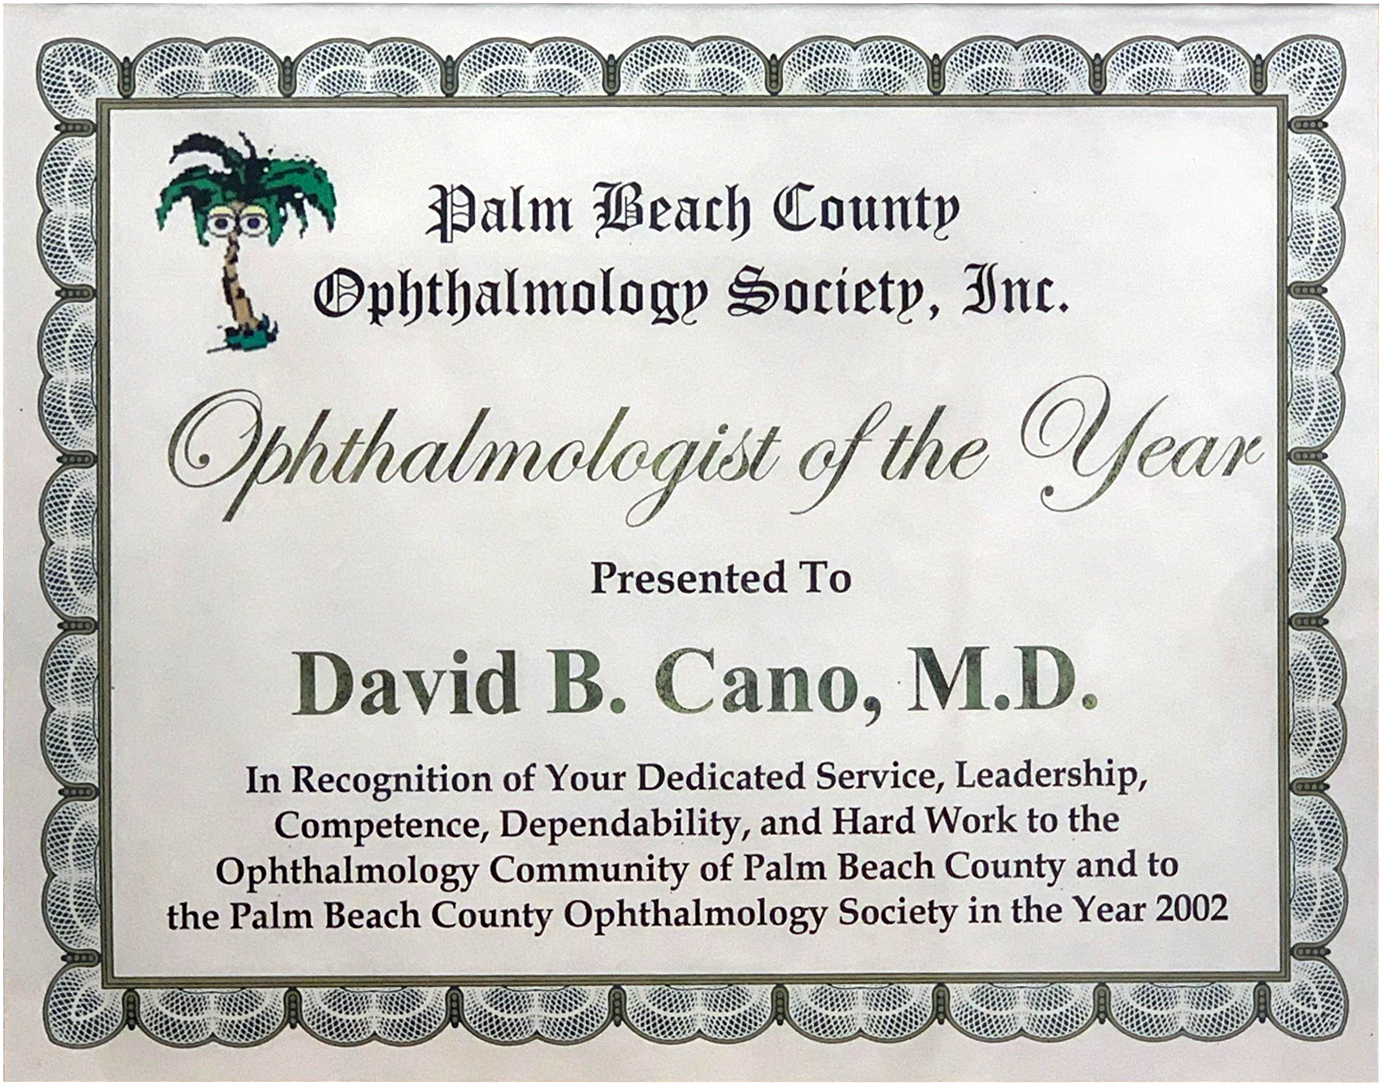 Ophthalmologist of the Year